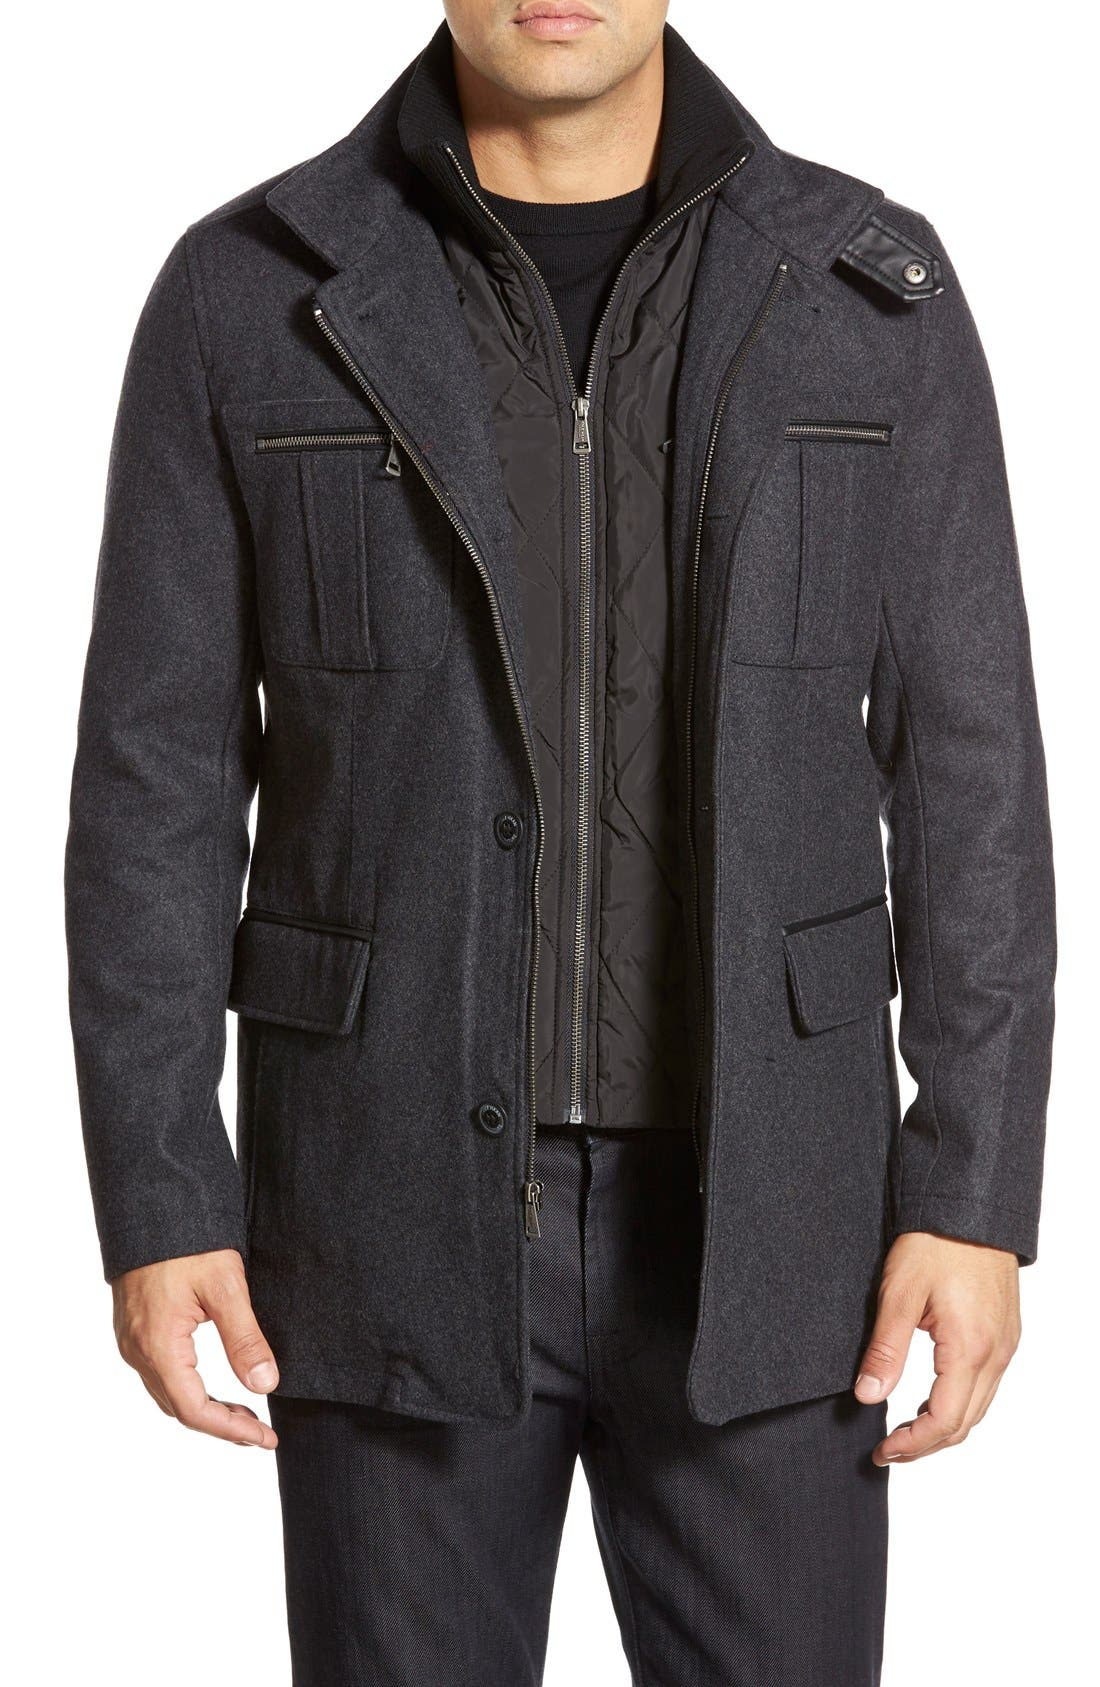 Cole Haan Wool Blend Jacket